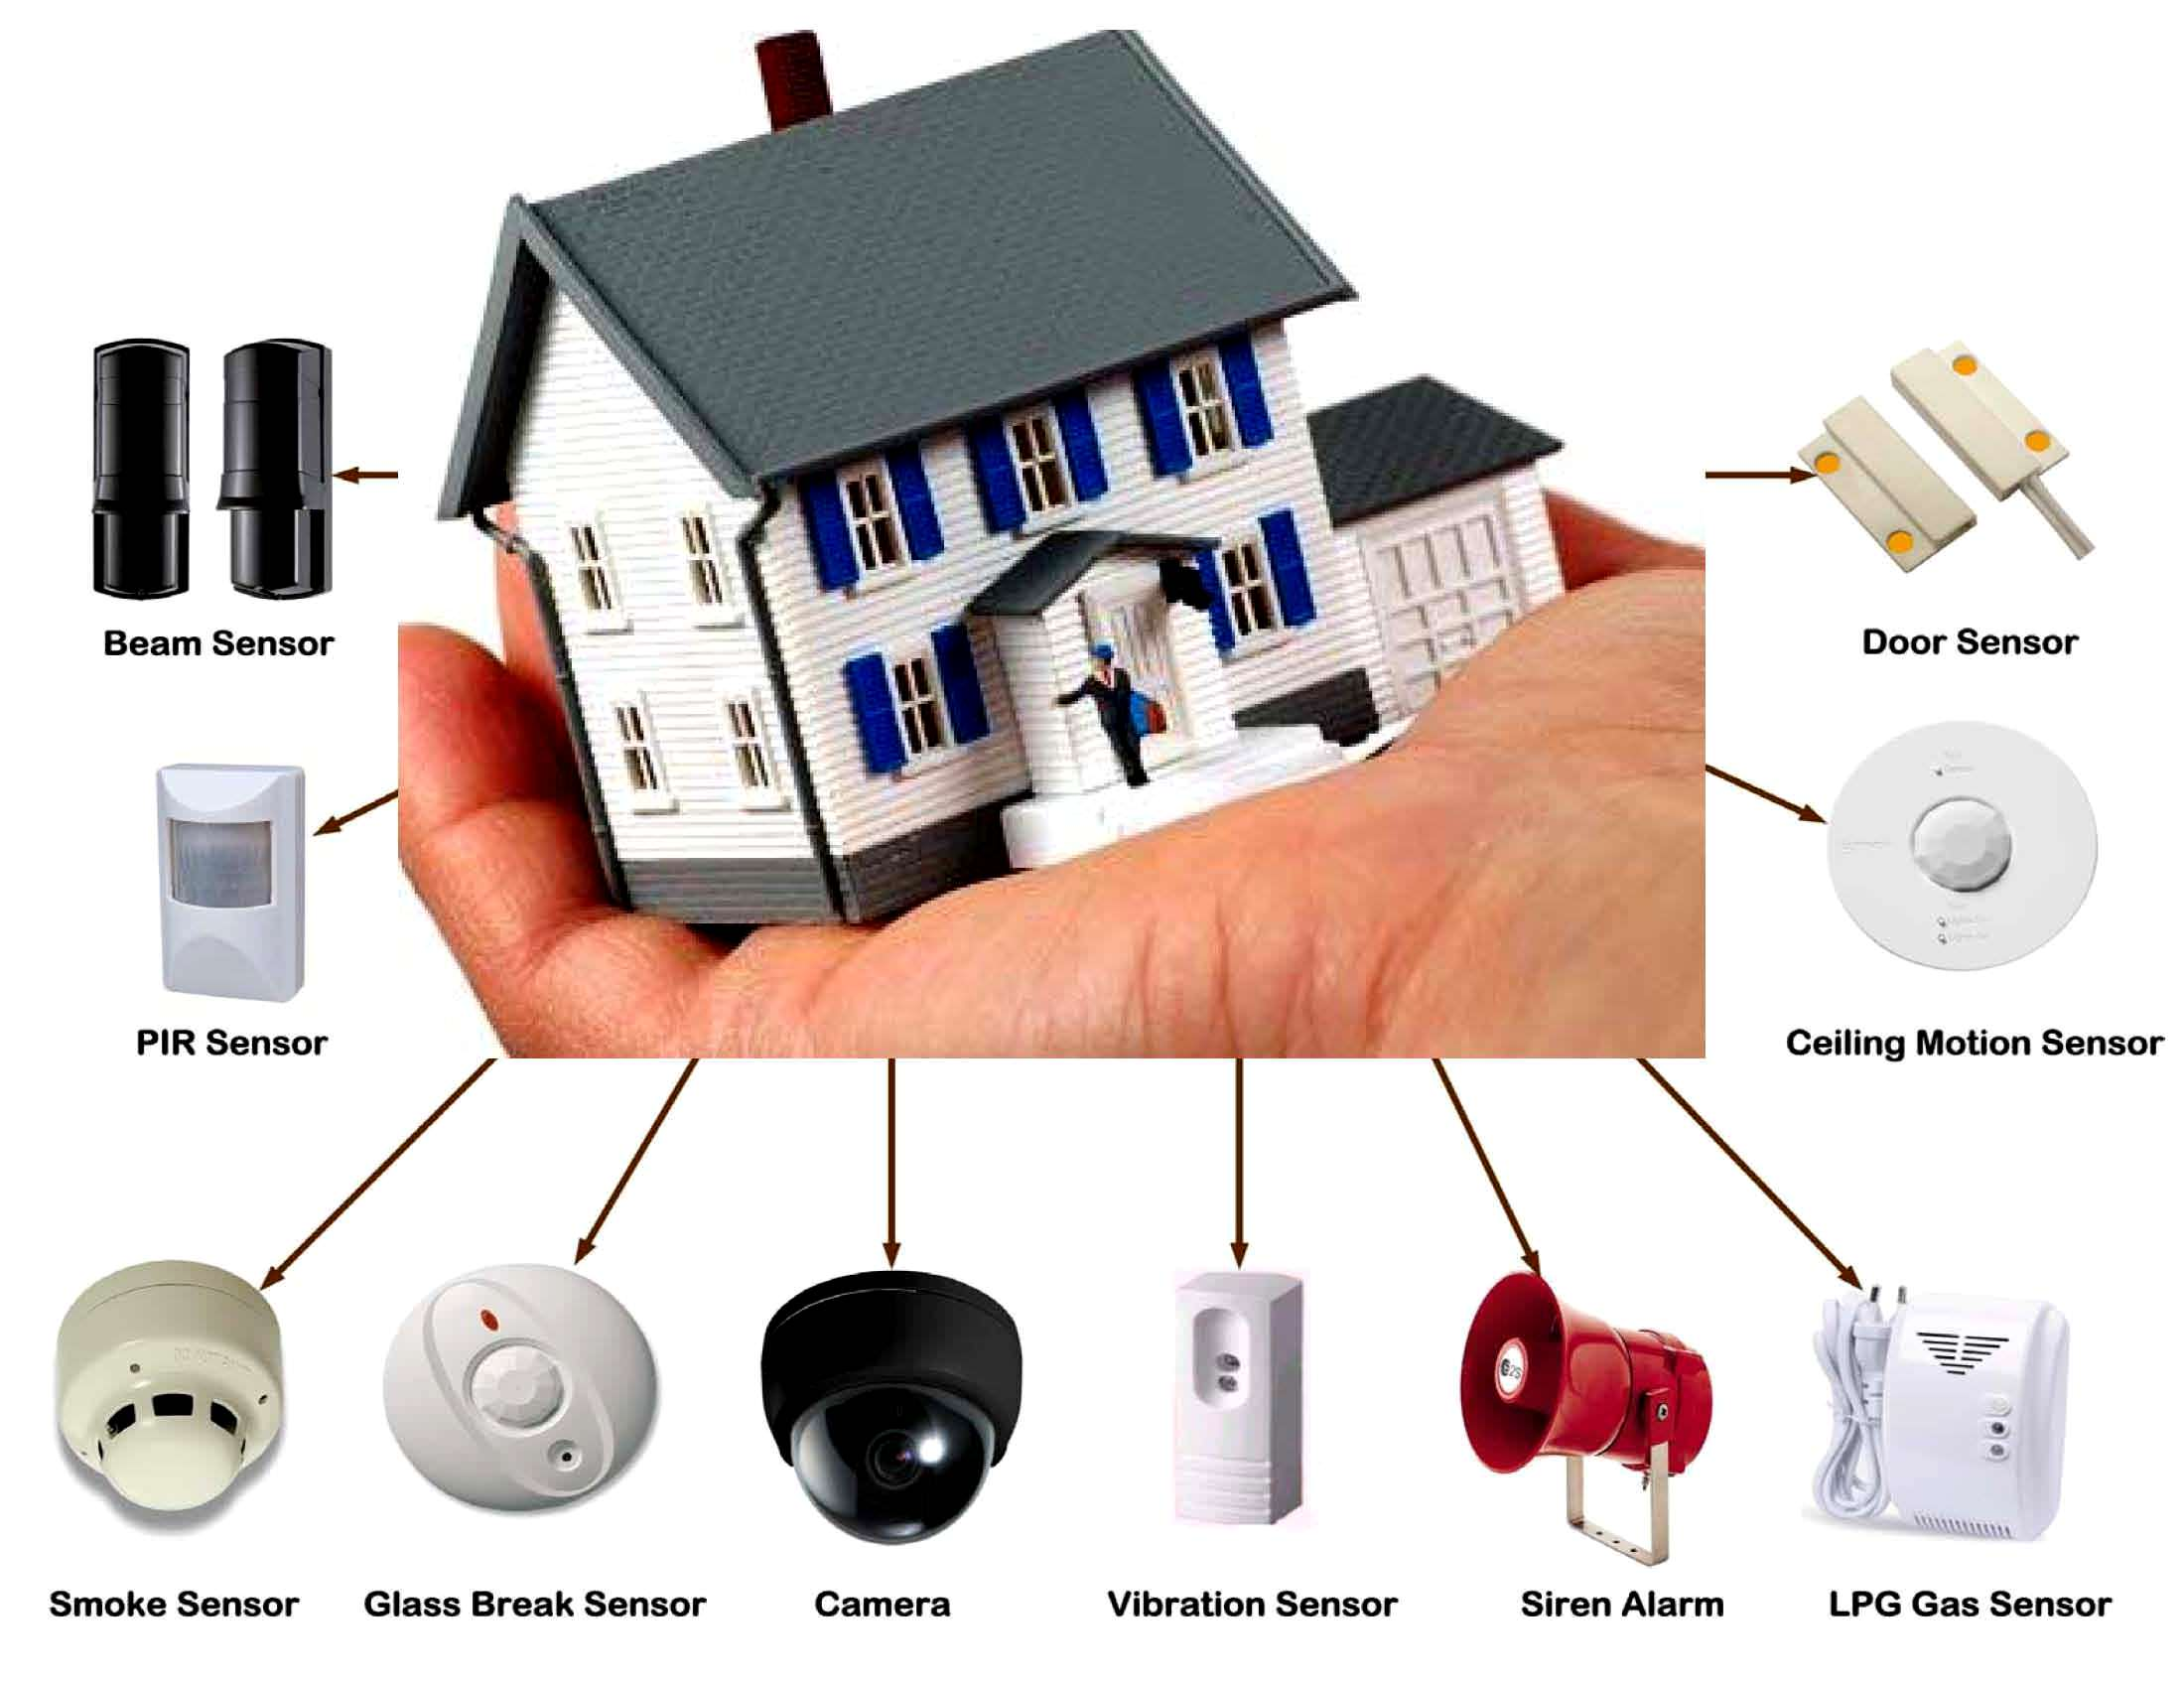 Top 5 gadgets for home security technology vista Best gadgets for home